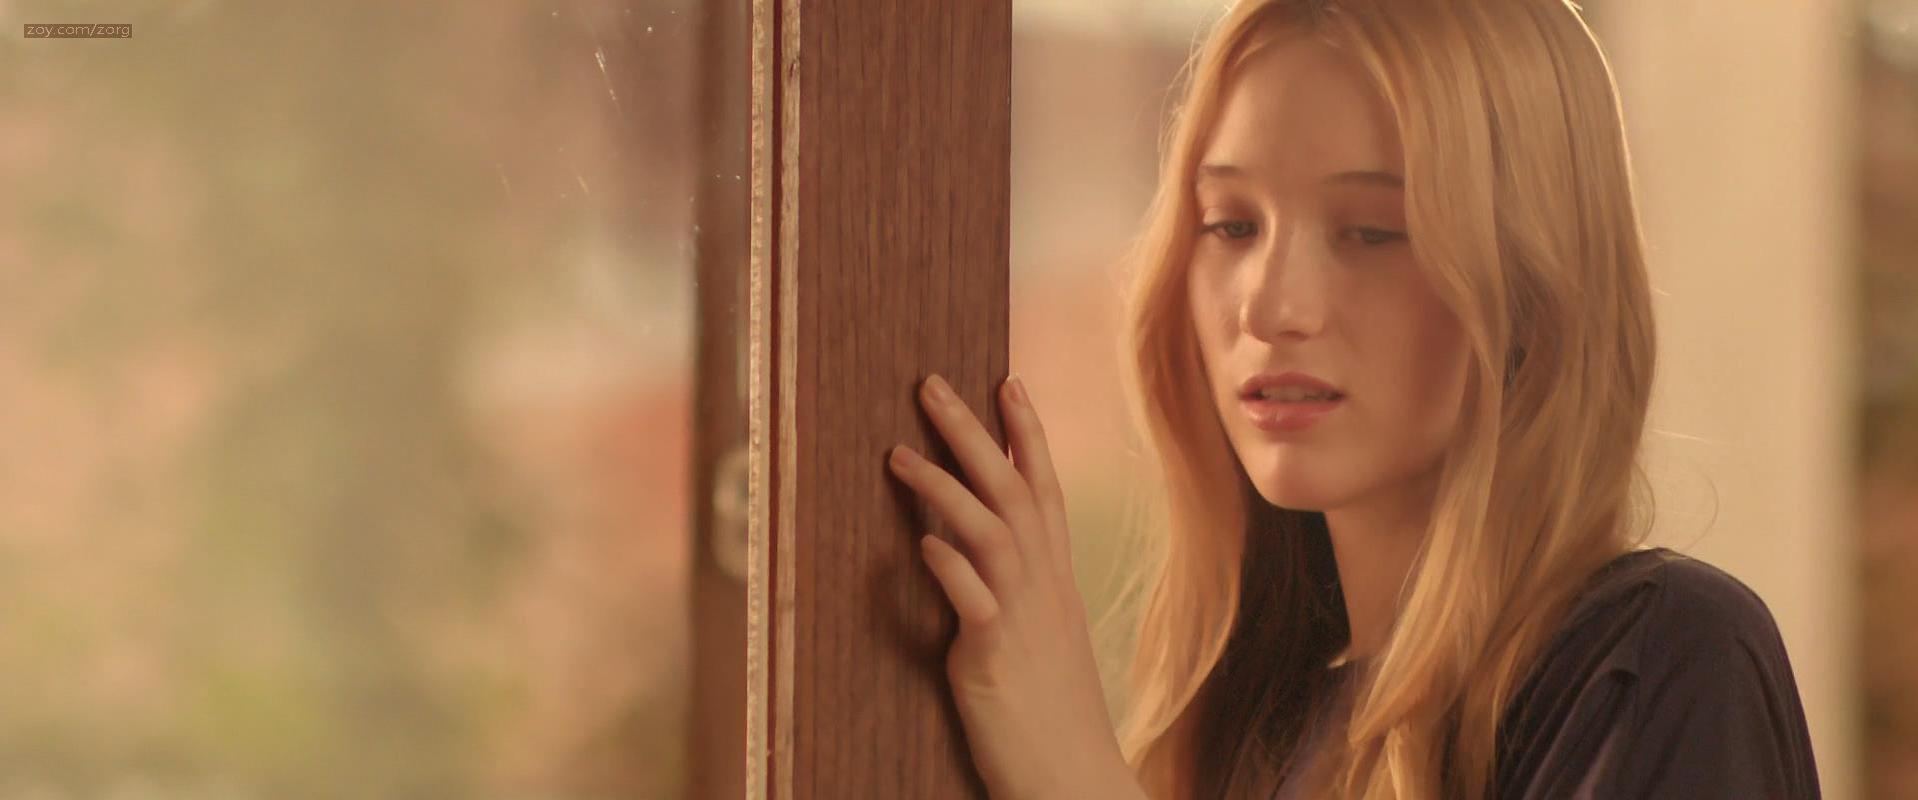 Sophie Lowe nude - After the Dark (2013)